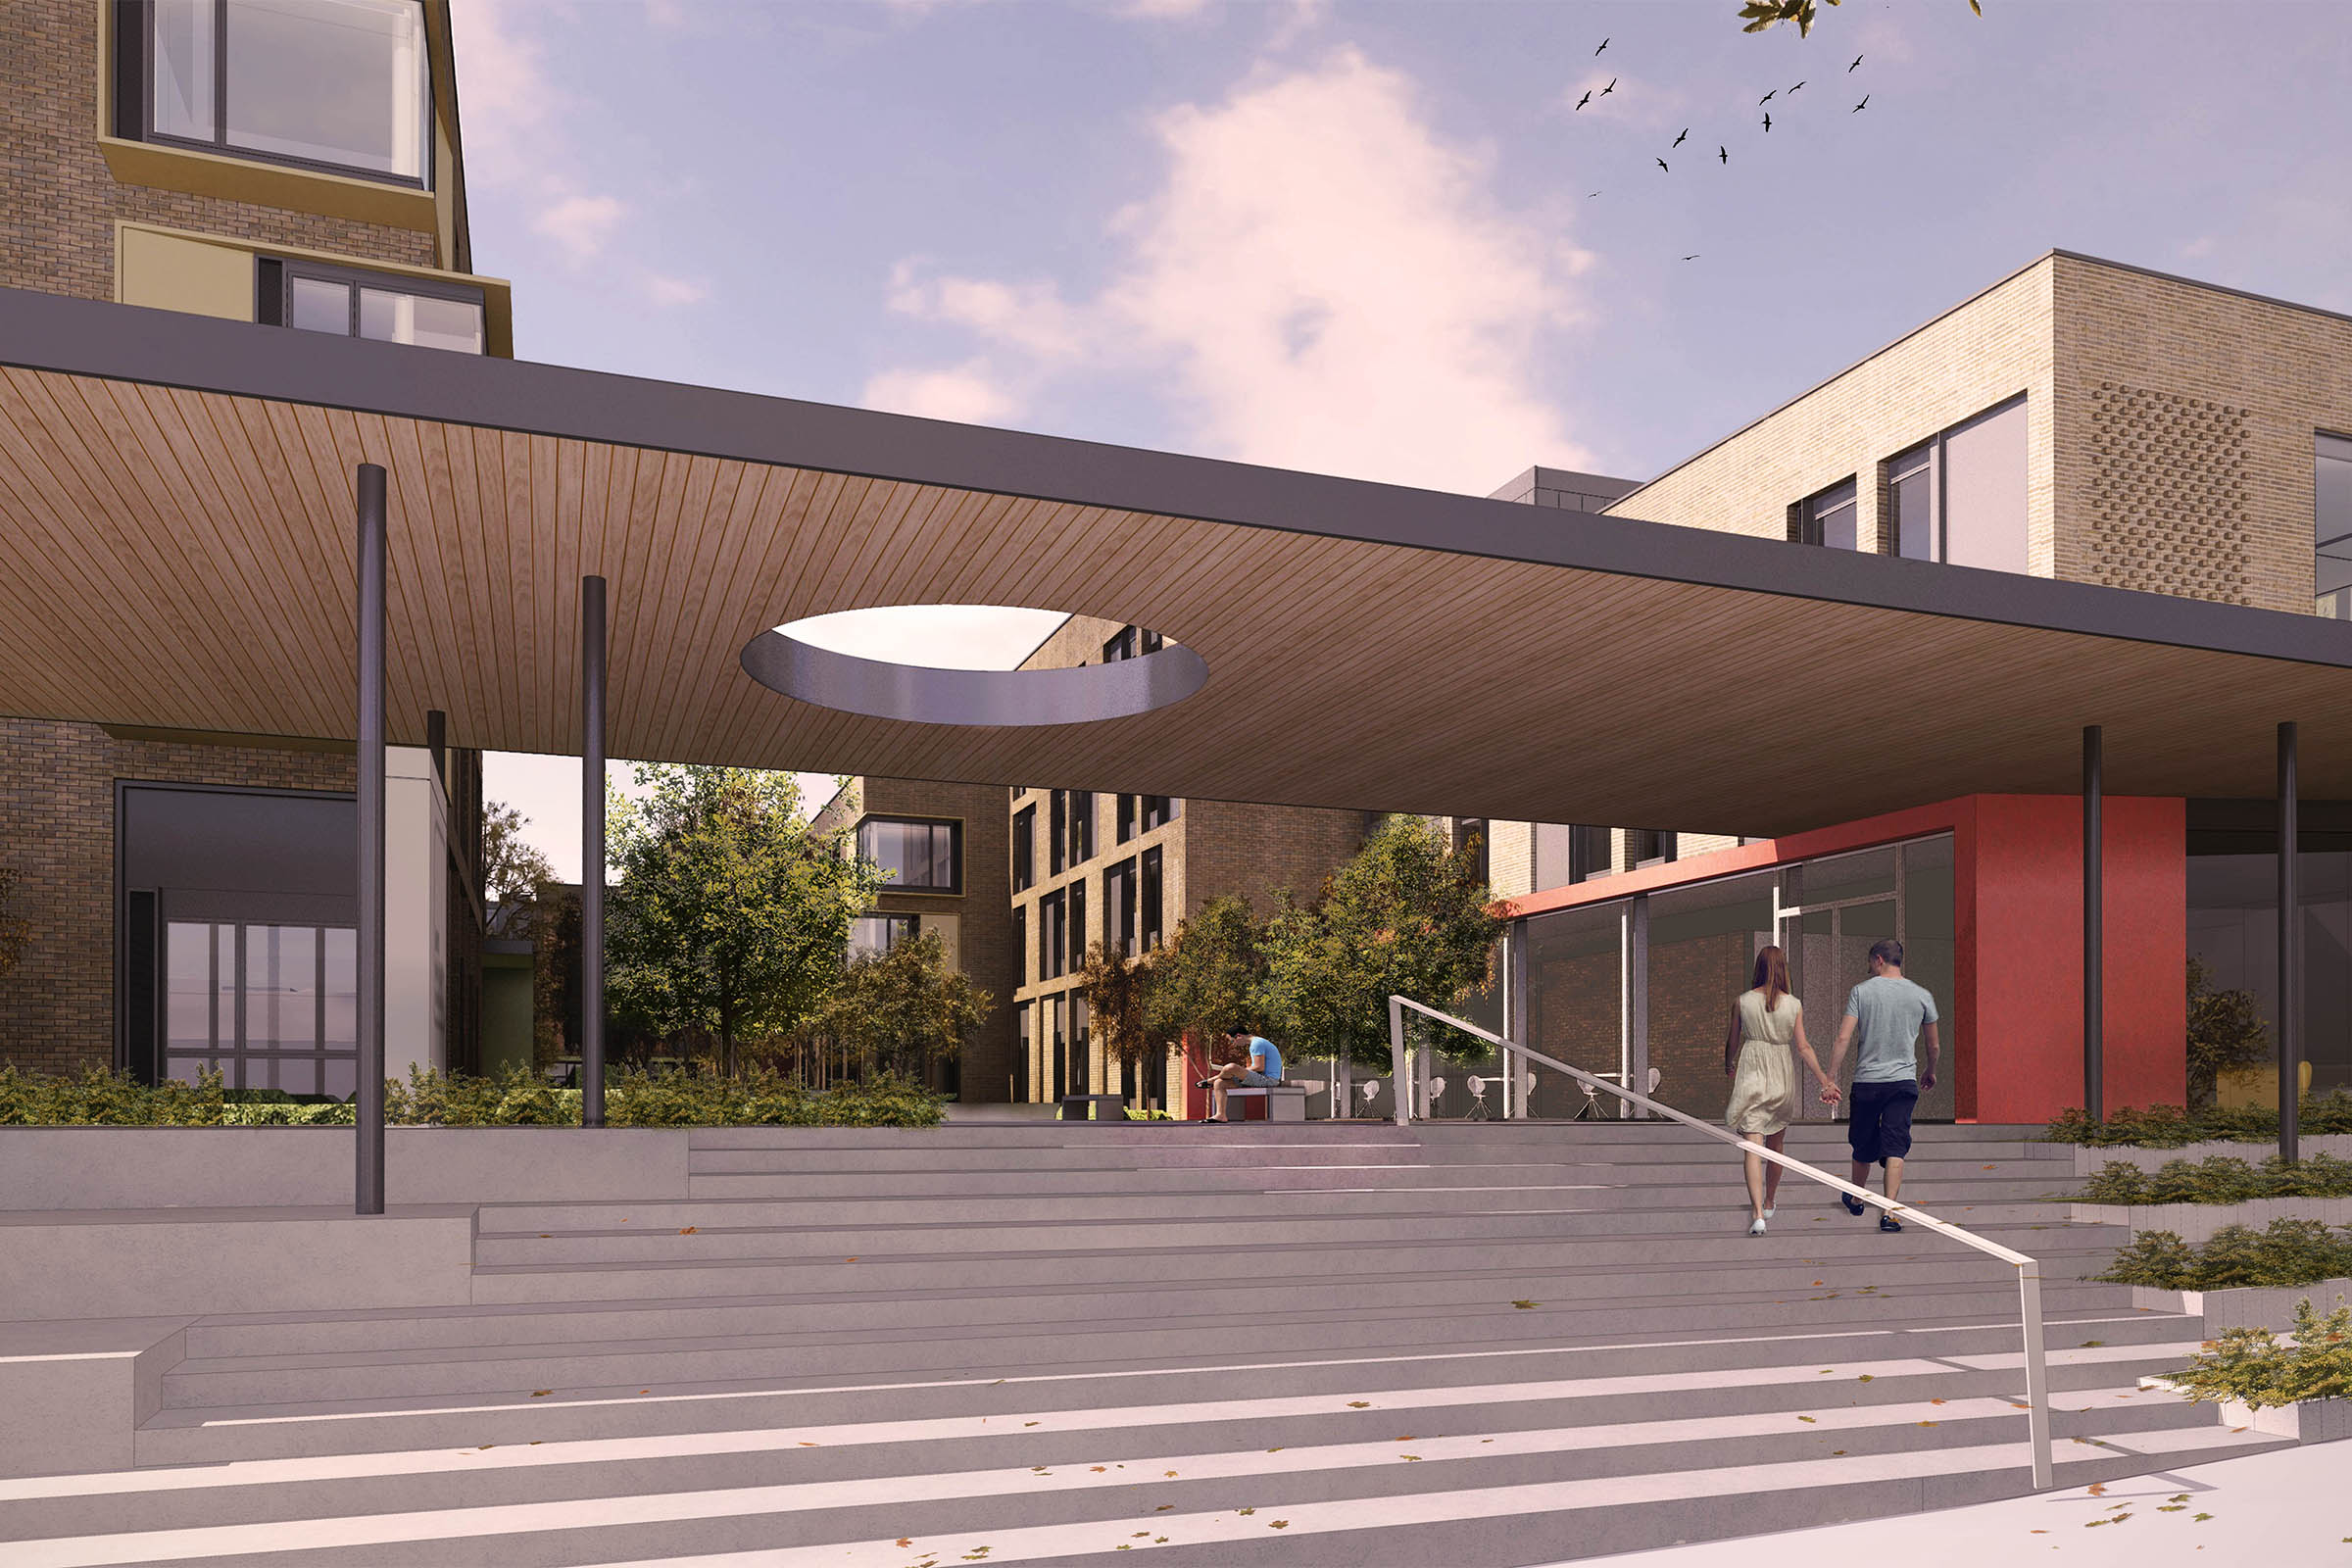 Student Accommodation Arts University Bournemouth Design